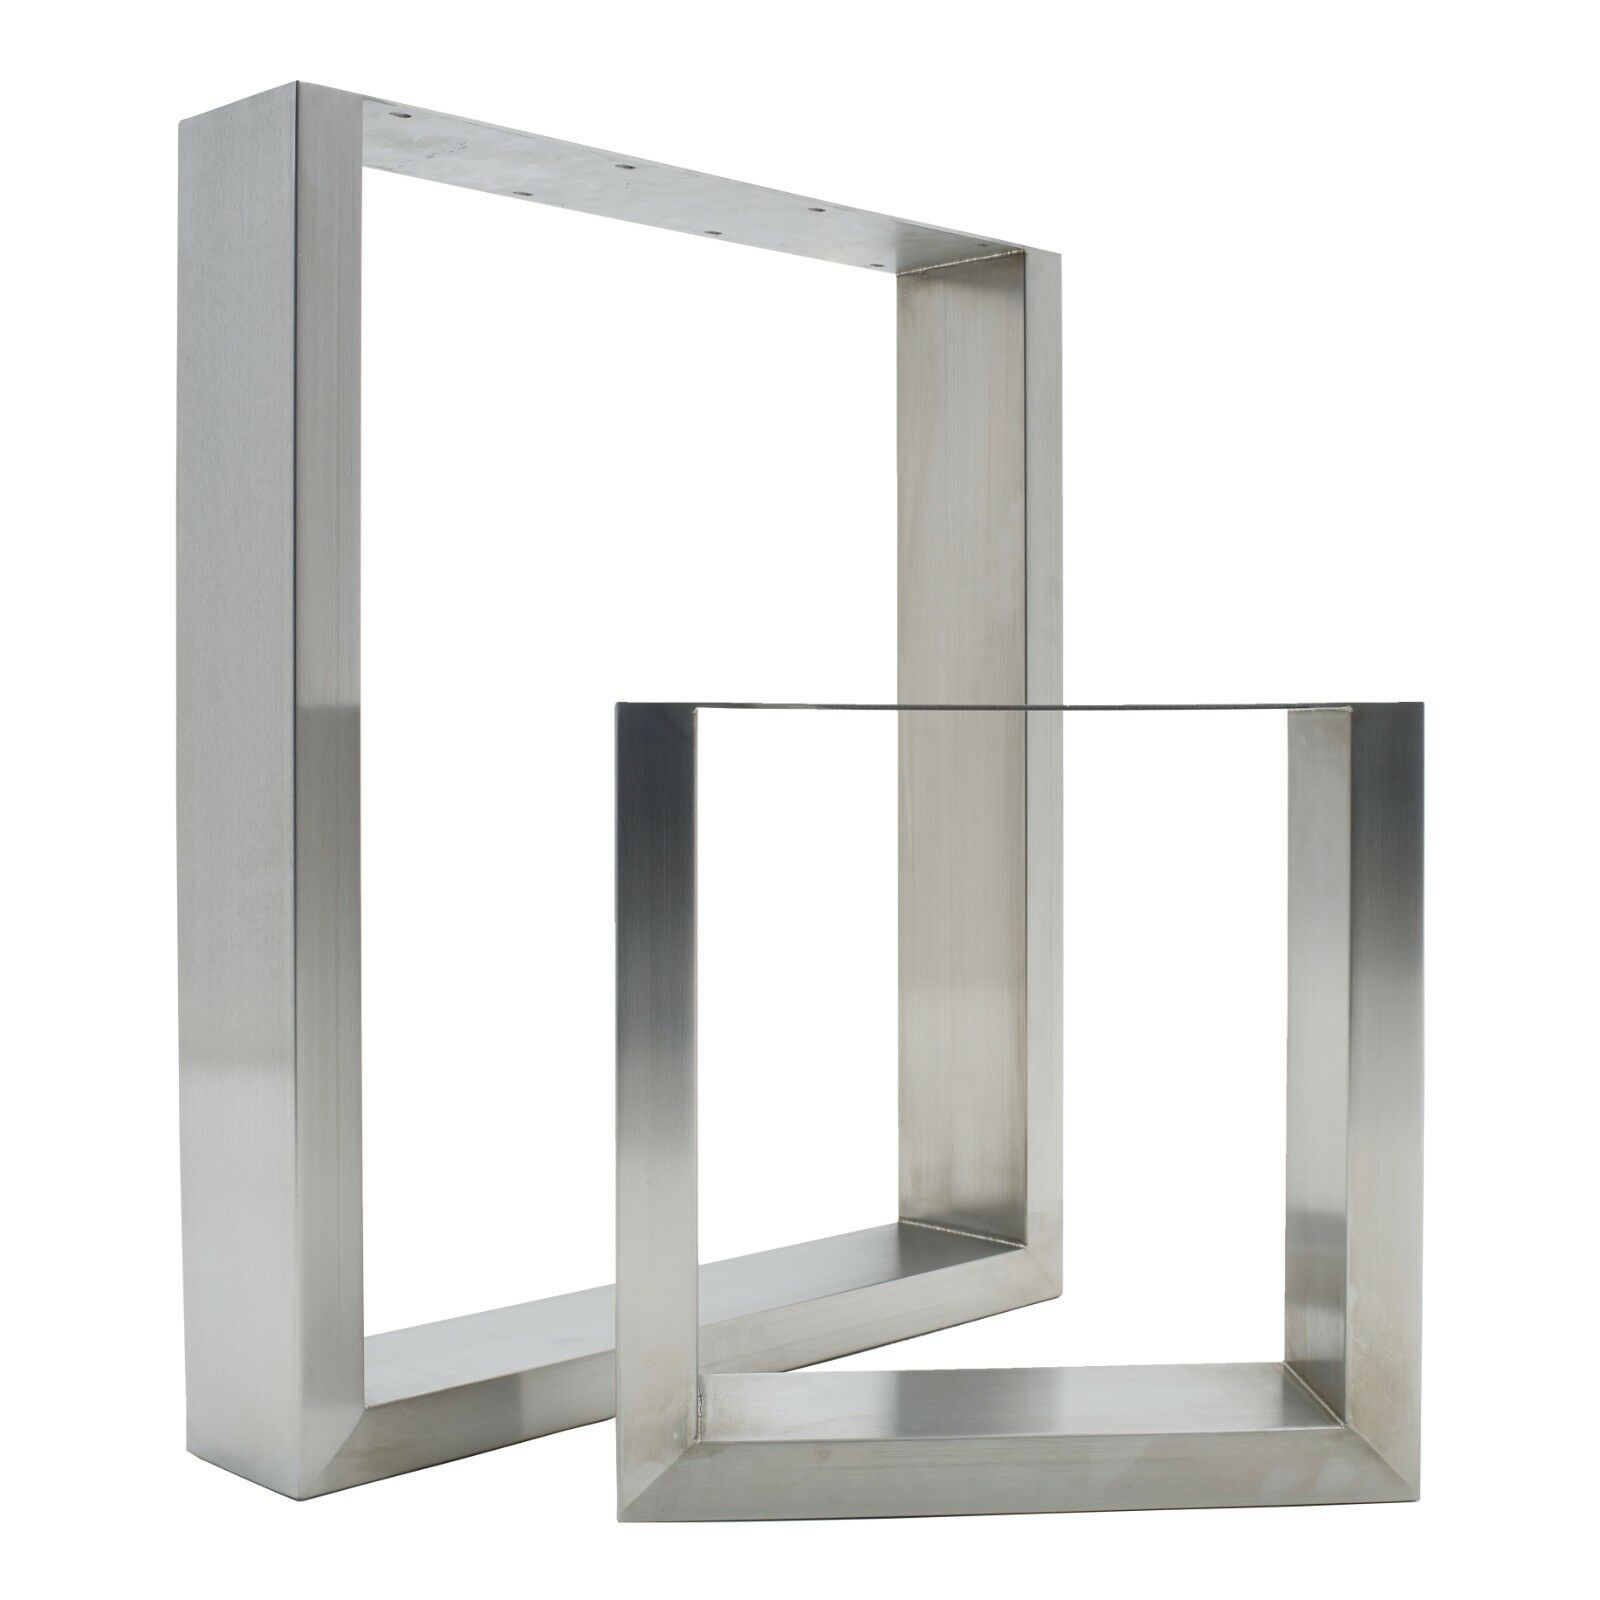 2 X Stainless Steel Table Legs Sleek Modern Brushed Finish 1 Of 8